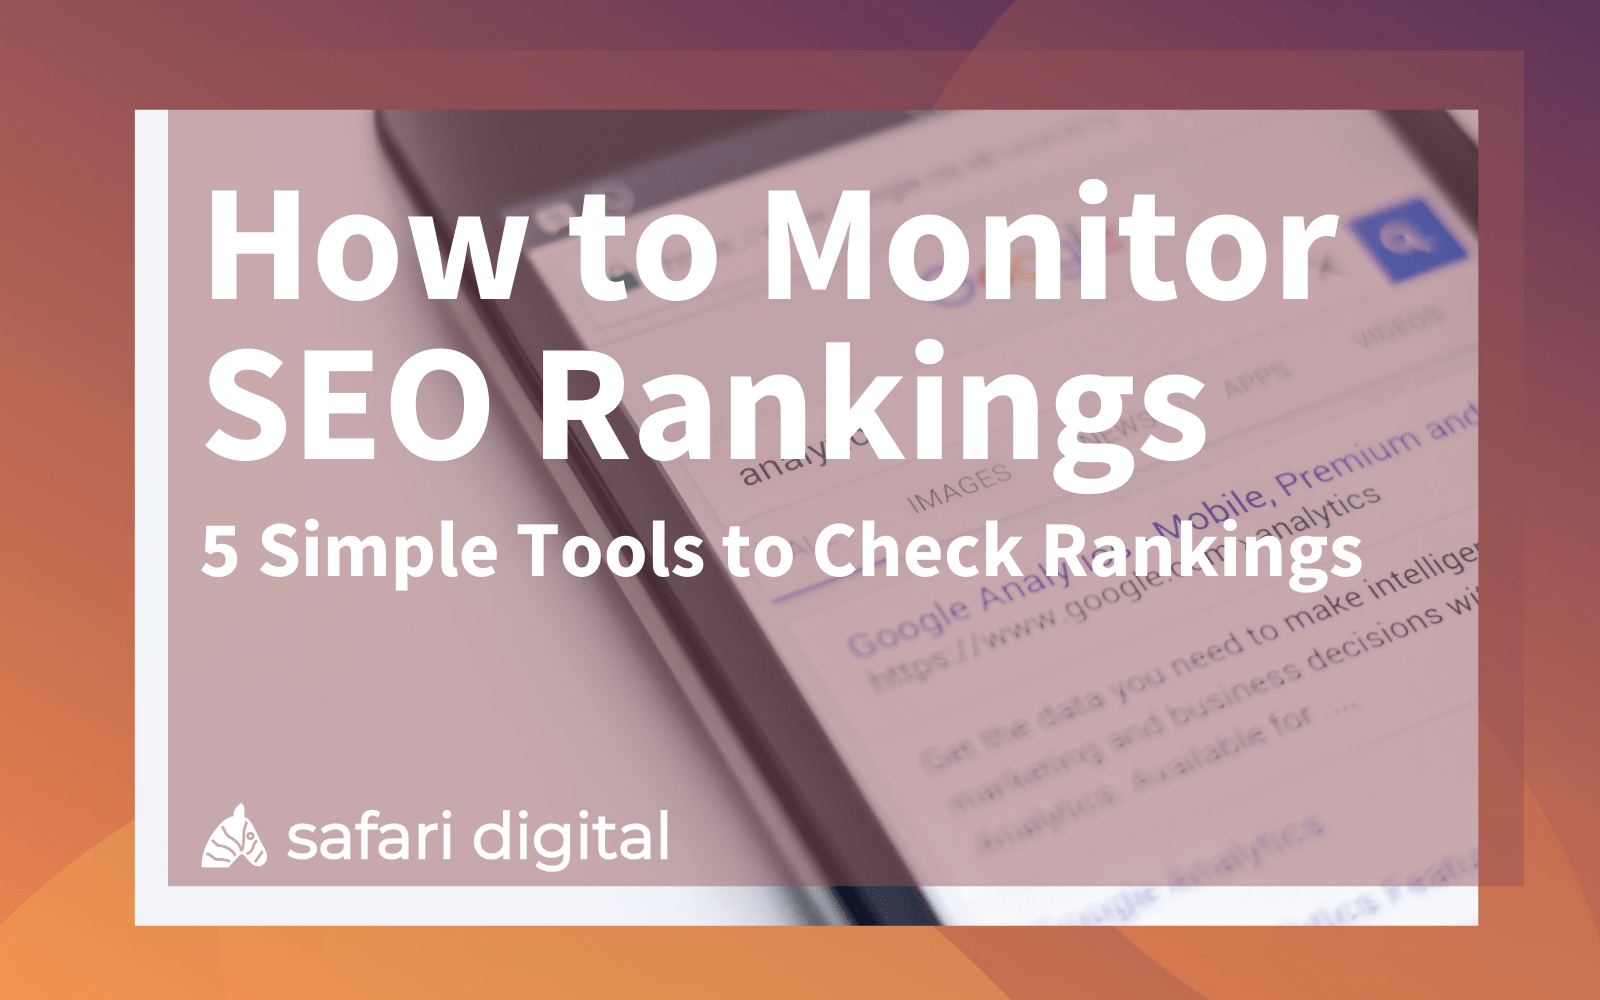 how to monitor sEO rankings cover image